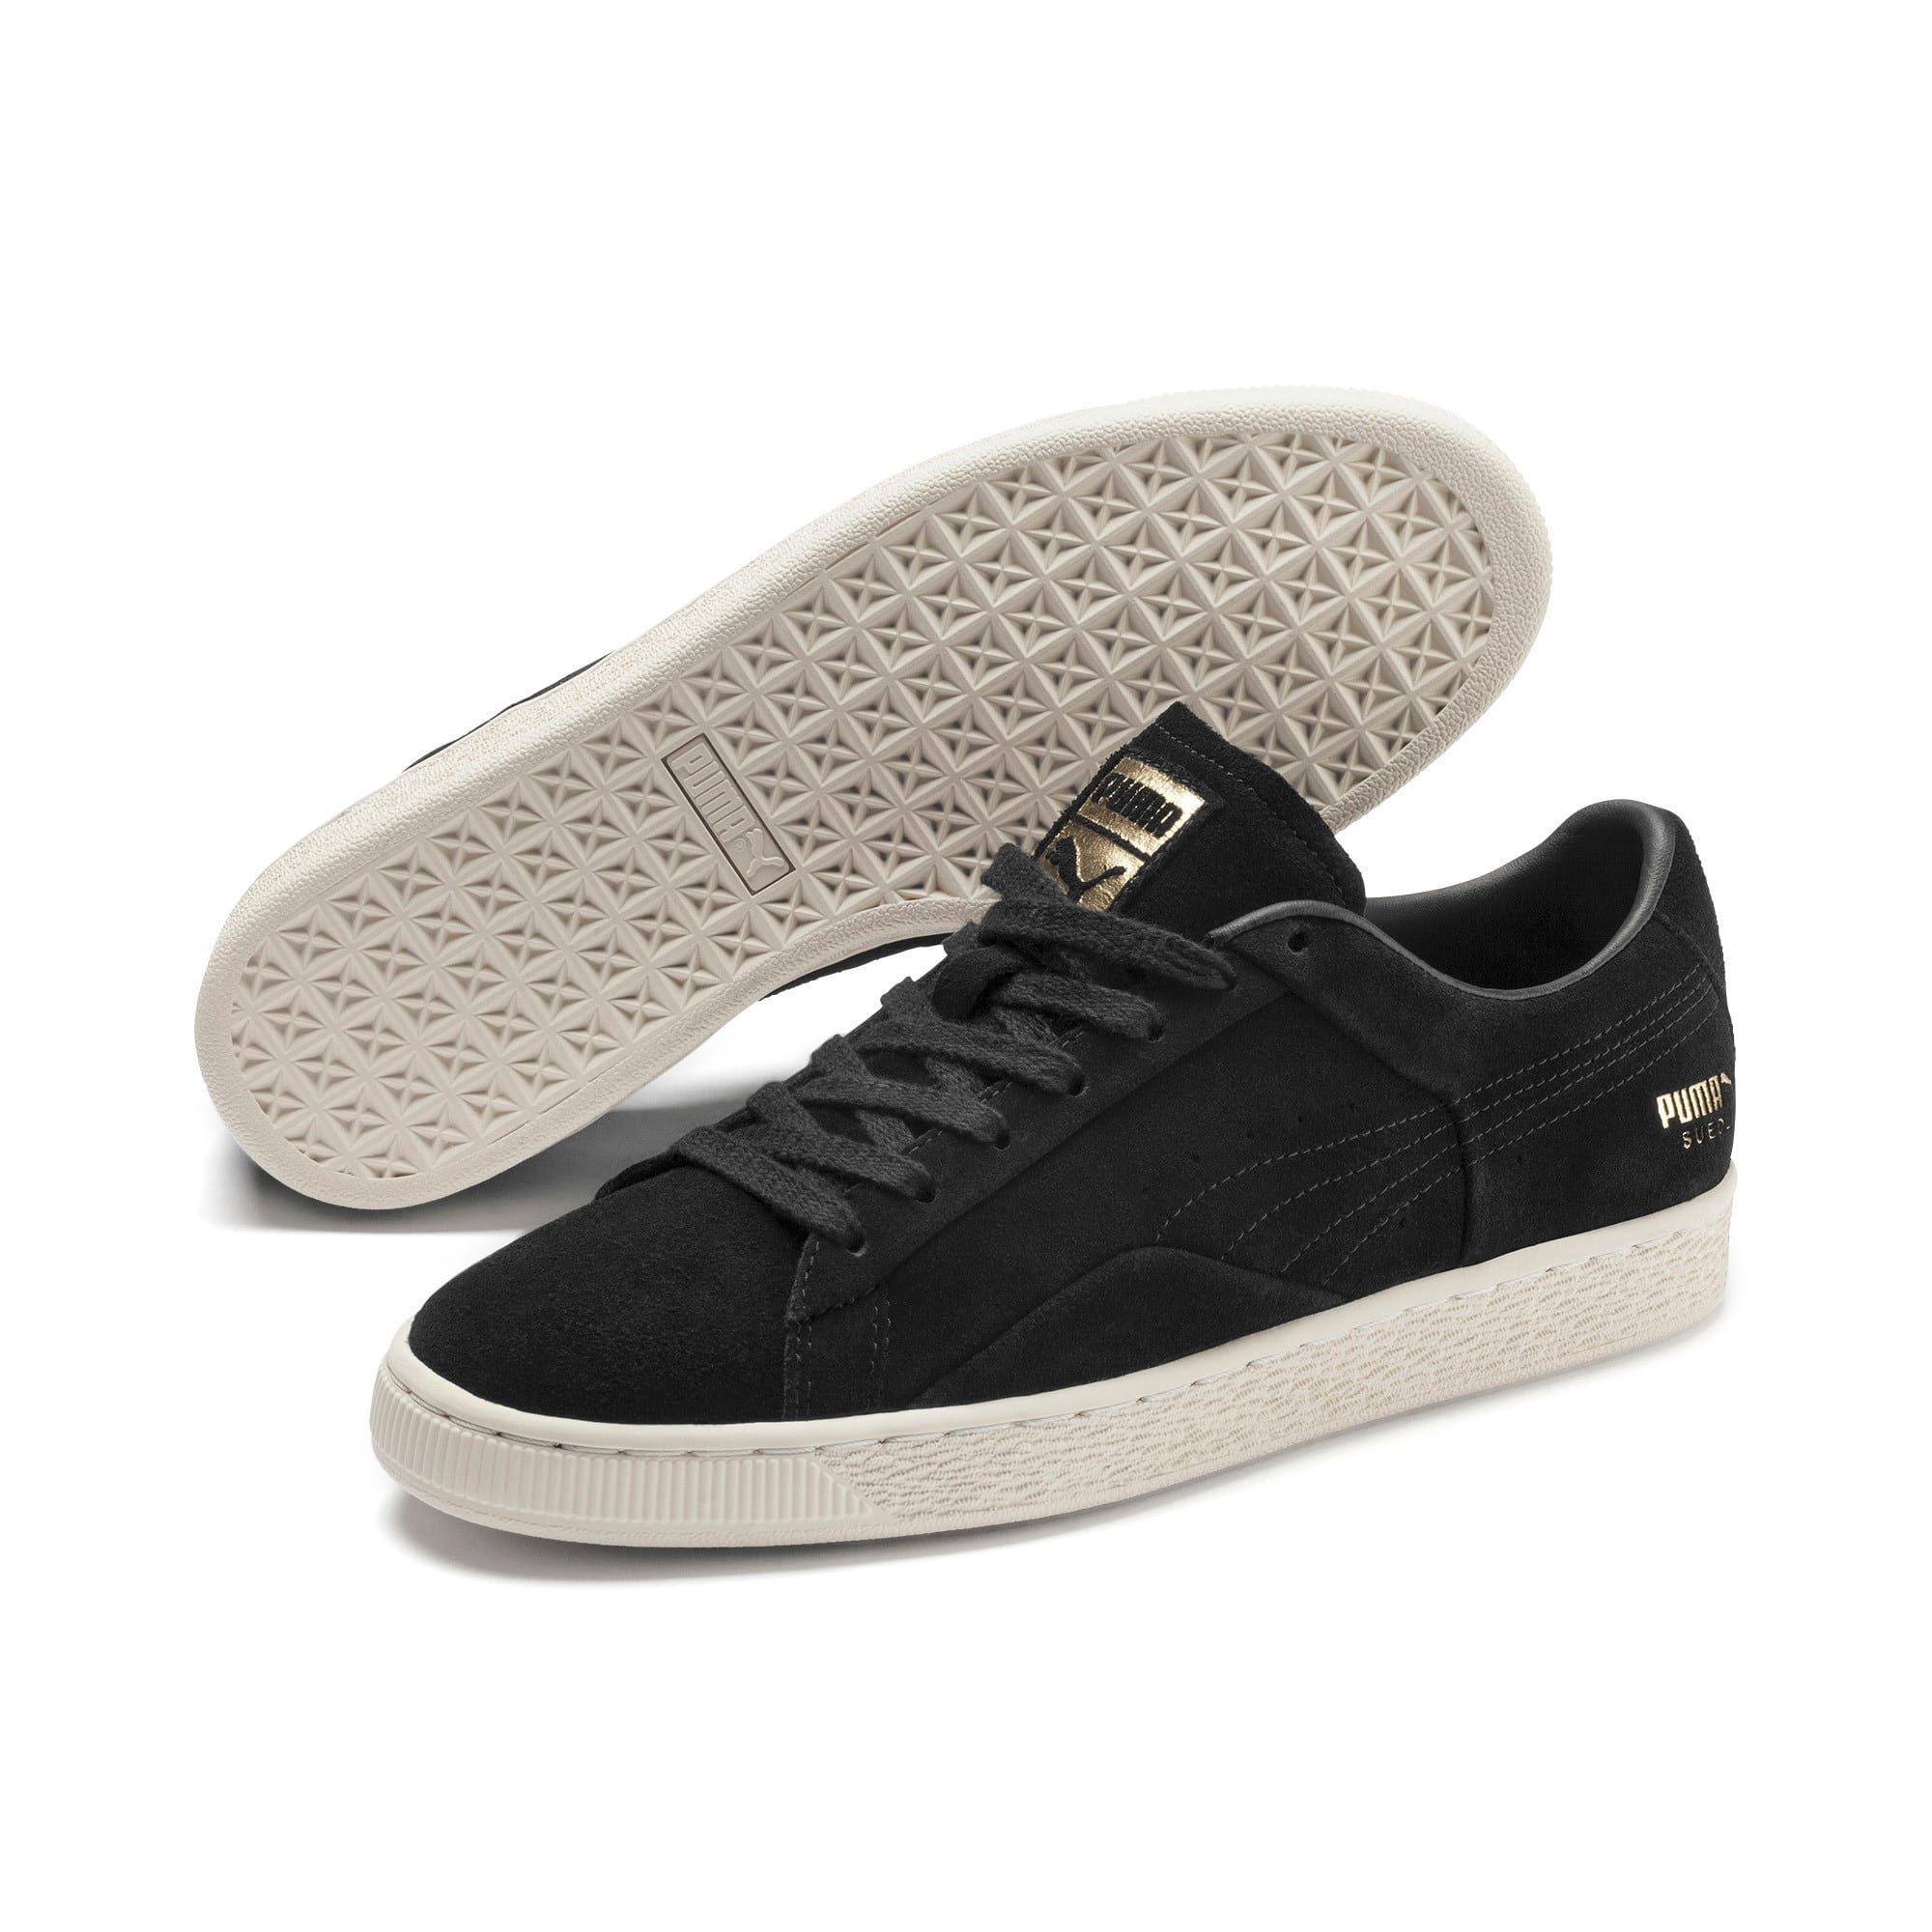 Thumbnail 3 of Suede Notch Trainers, Puma Black-White-gold, medium